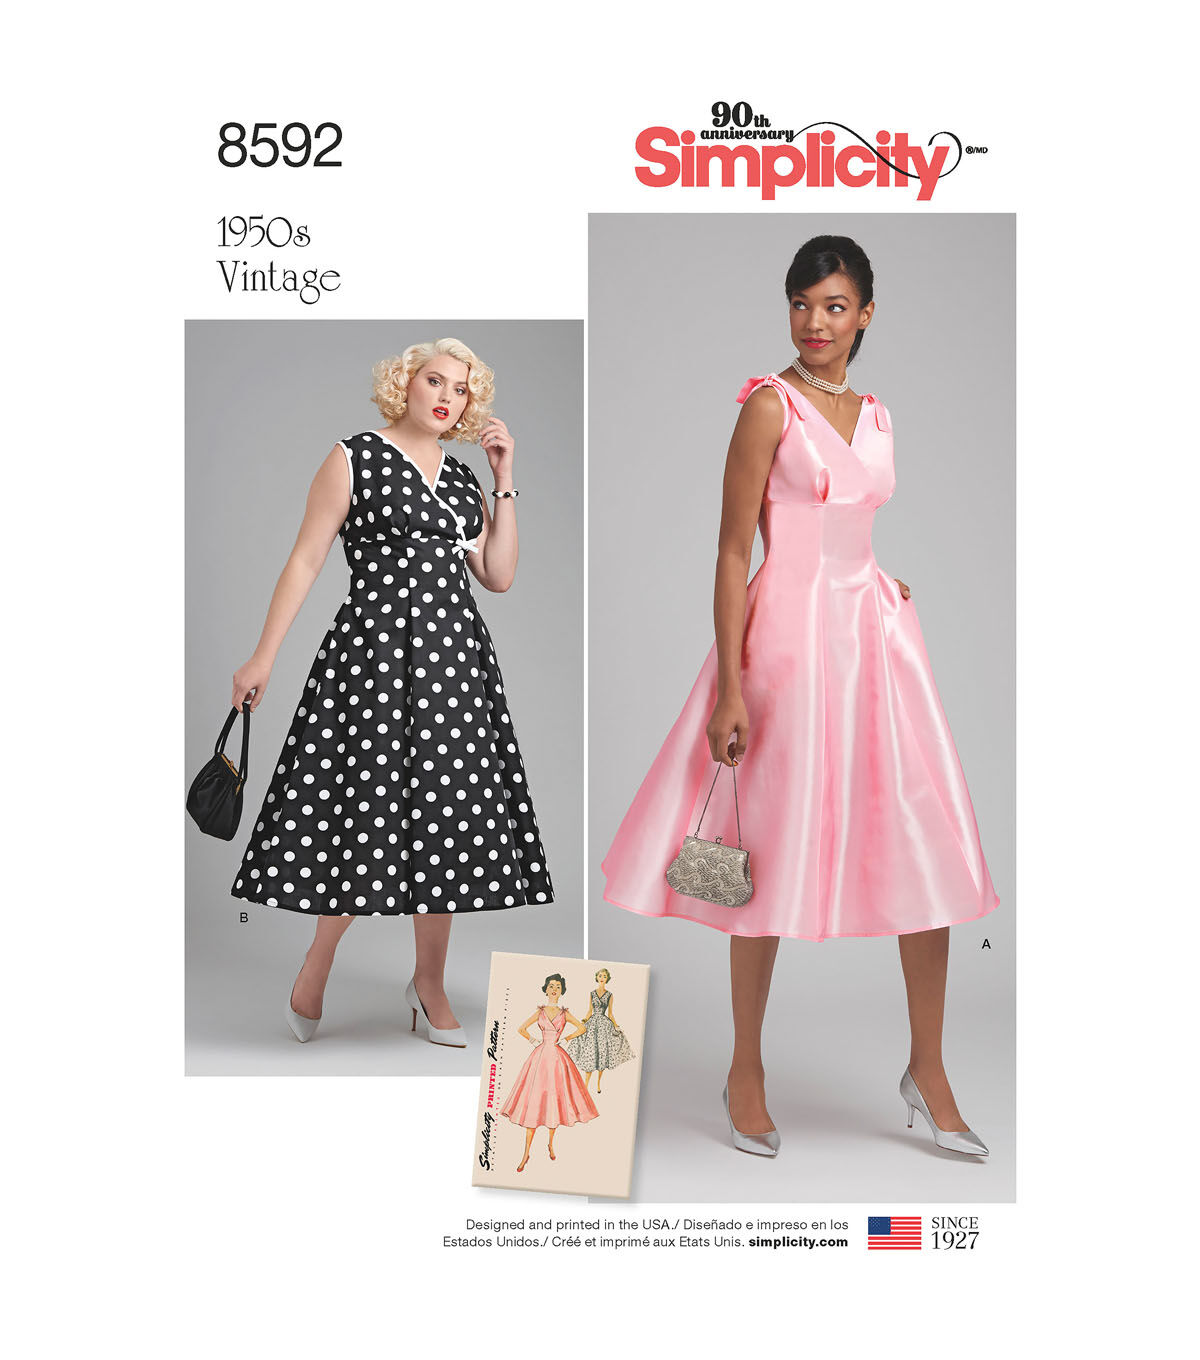 1950s Sewing Patterns | Dresses, Skirts, Tops, Mens 1950s Simplicity Pattern 8592 Misses/Womens Vintage Dress-Size BB (20W-28W) $25.99 AT vintagedancer.com